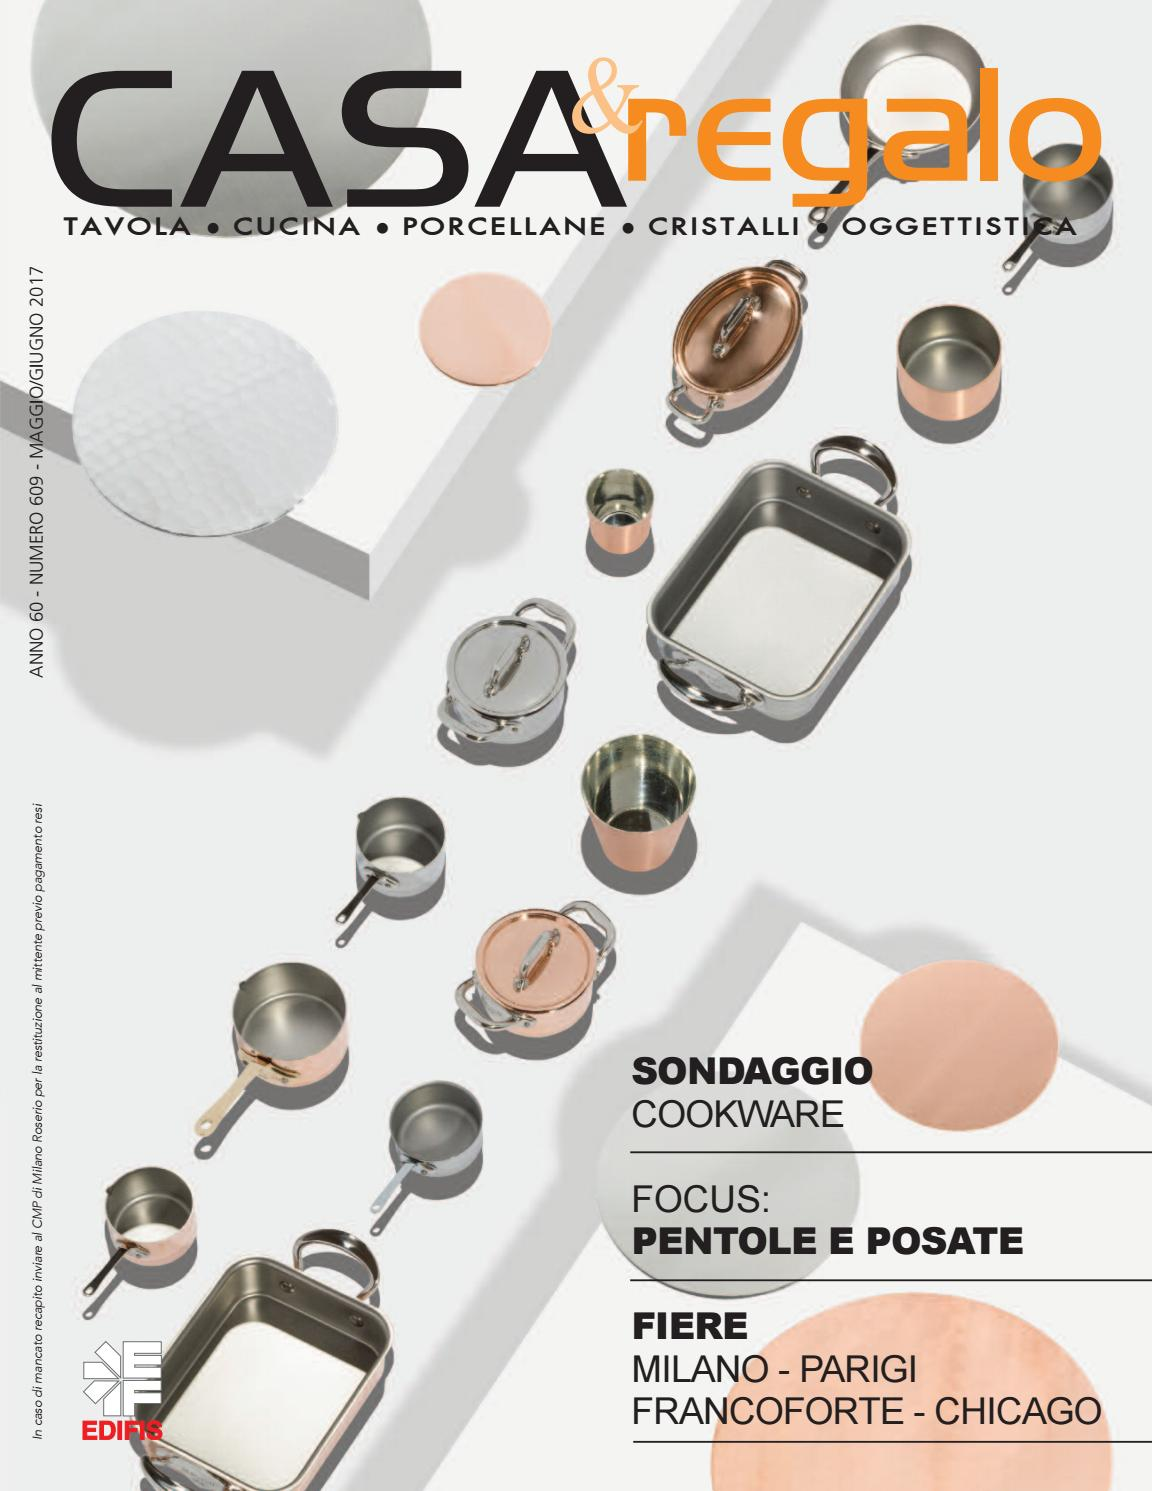 Flonal Lavora Con Noi 5 6c&r by edifis - issuu